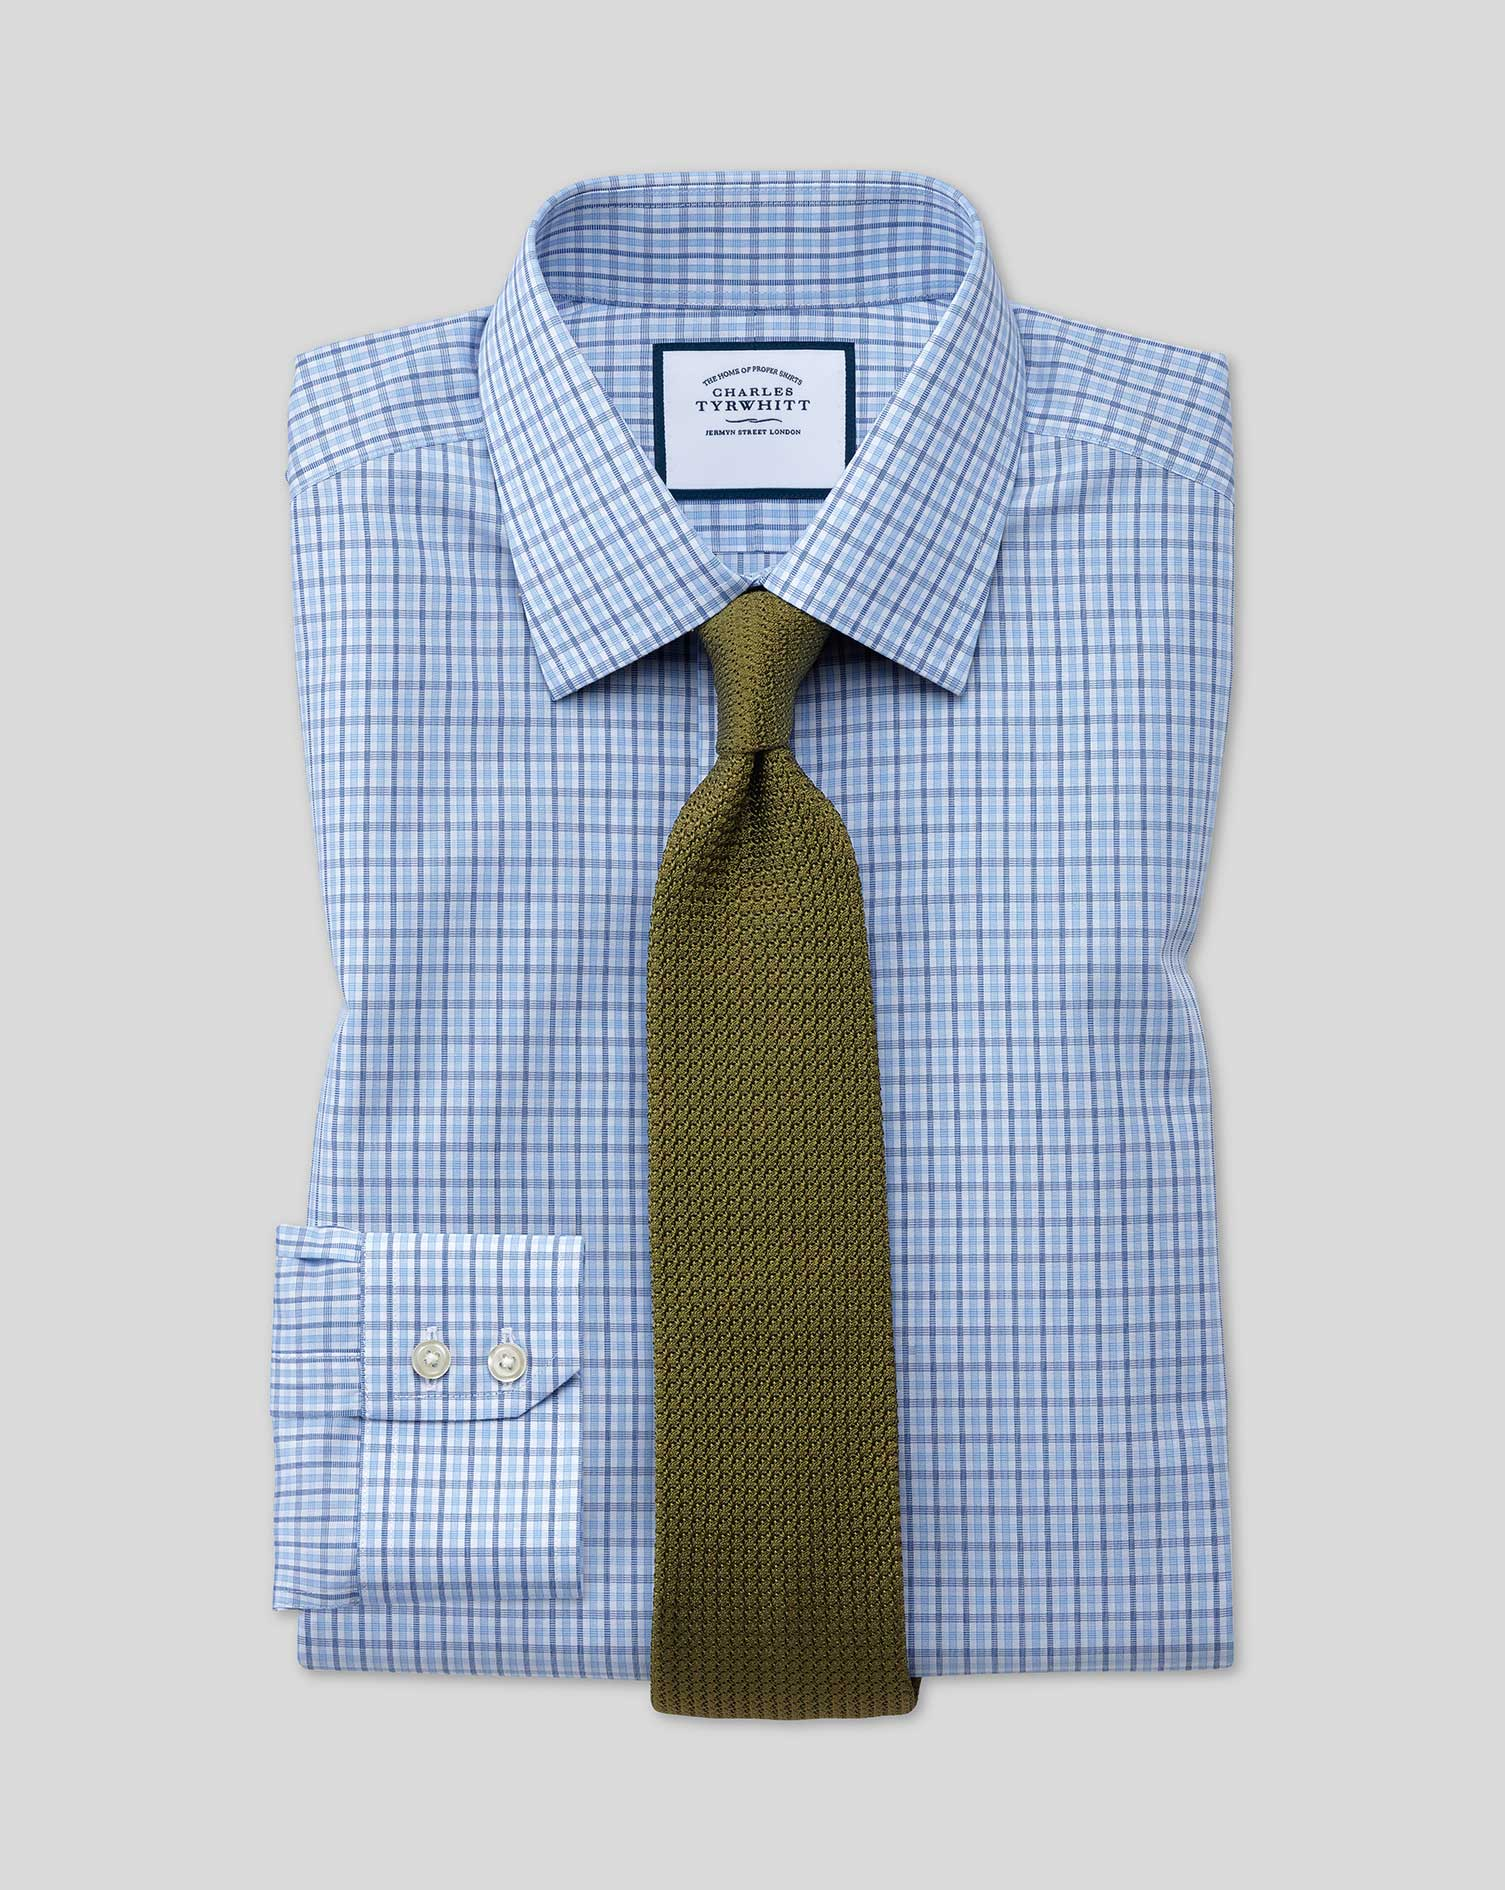 Slim Fit Non-Iron Blue and Sky Blue Check Cotton Formal Shirt Single Cuff Size 16/36 by Charles Tyrw